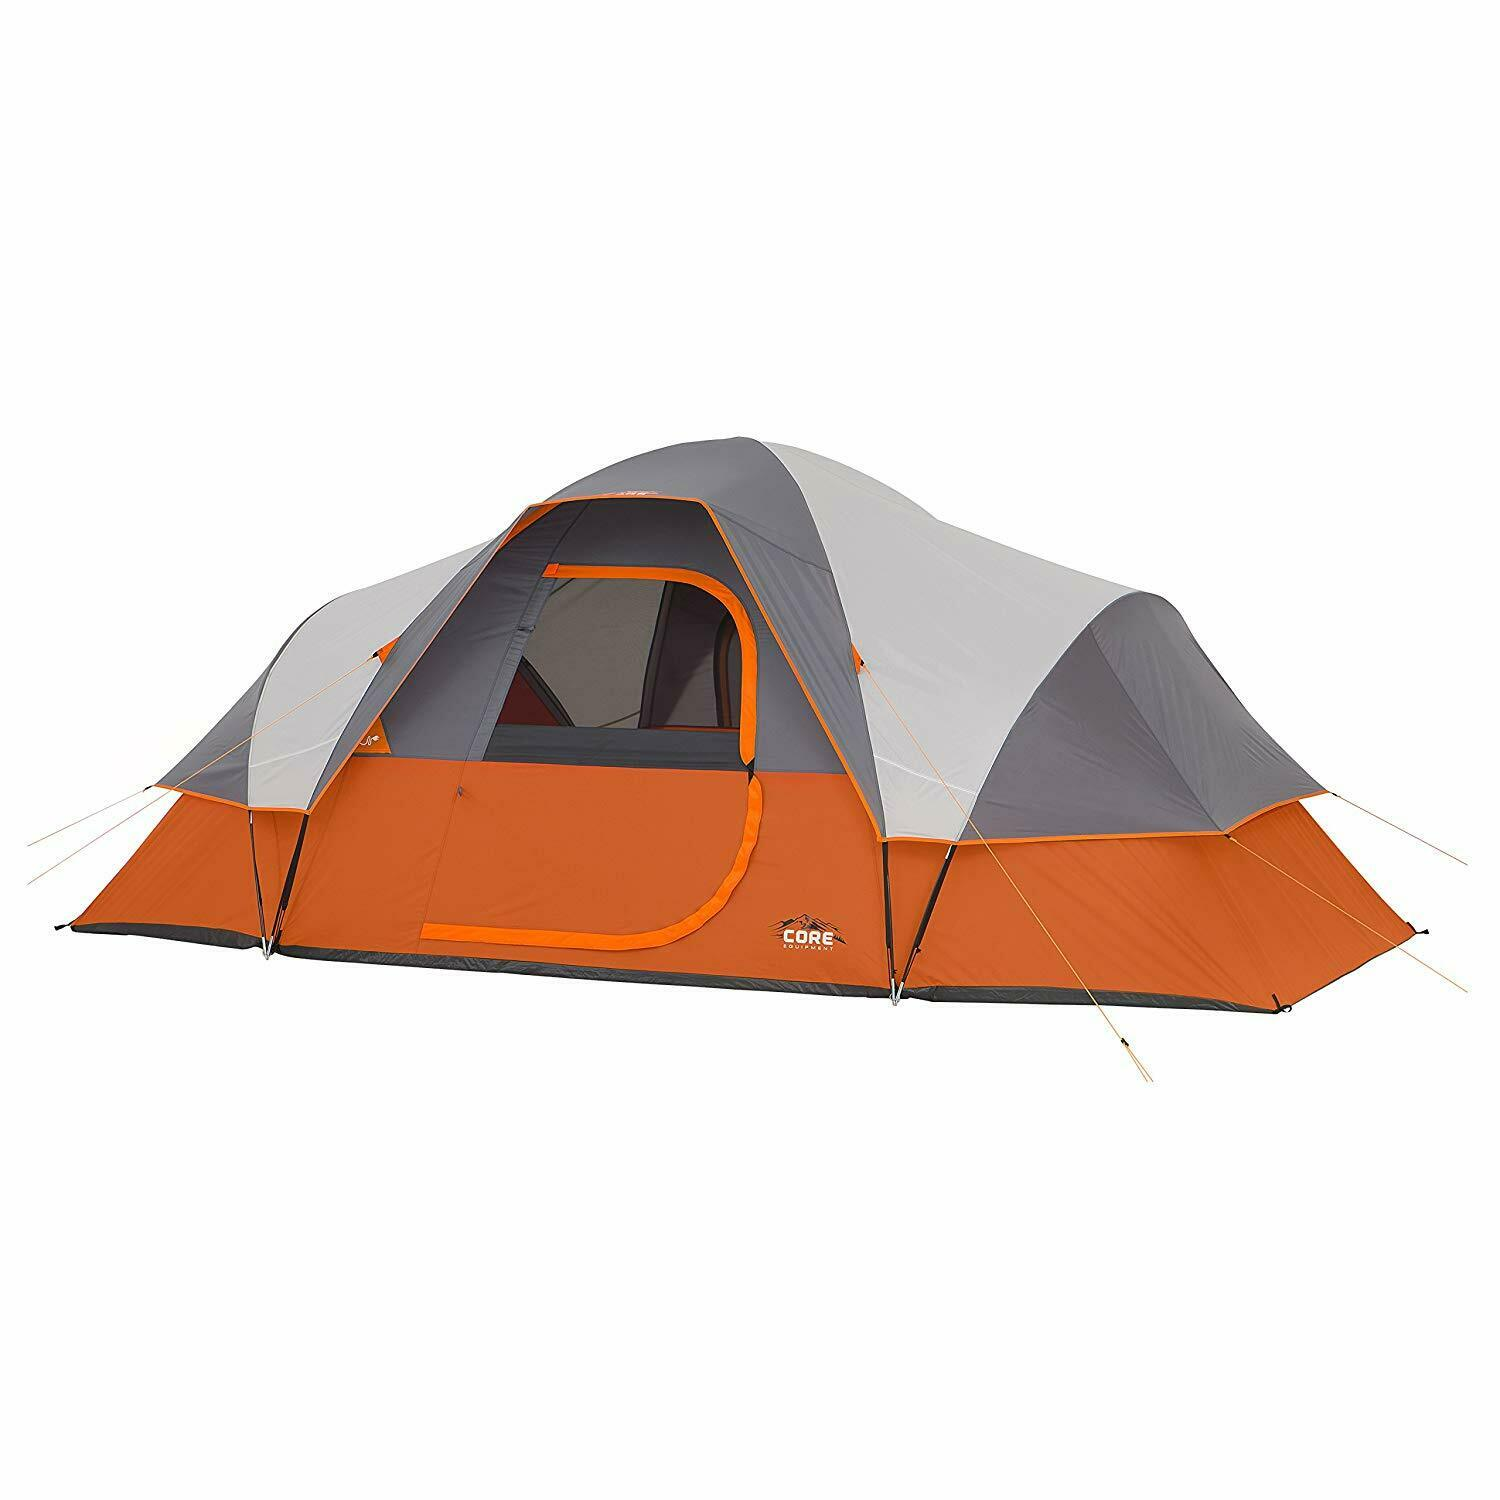 CORE 9 Person Extended Dome Tent  16 X 9 camping outdoors woods